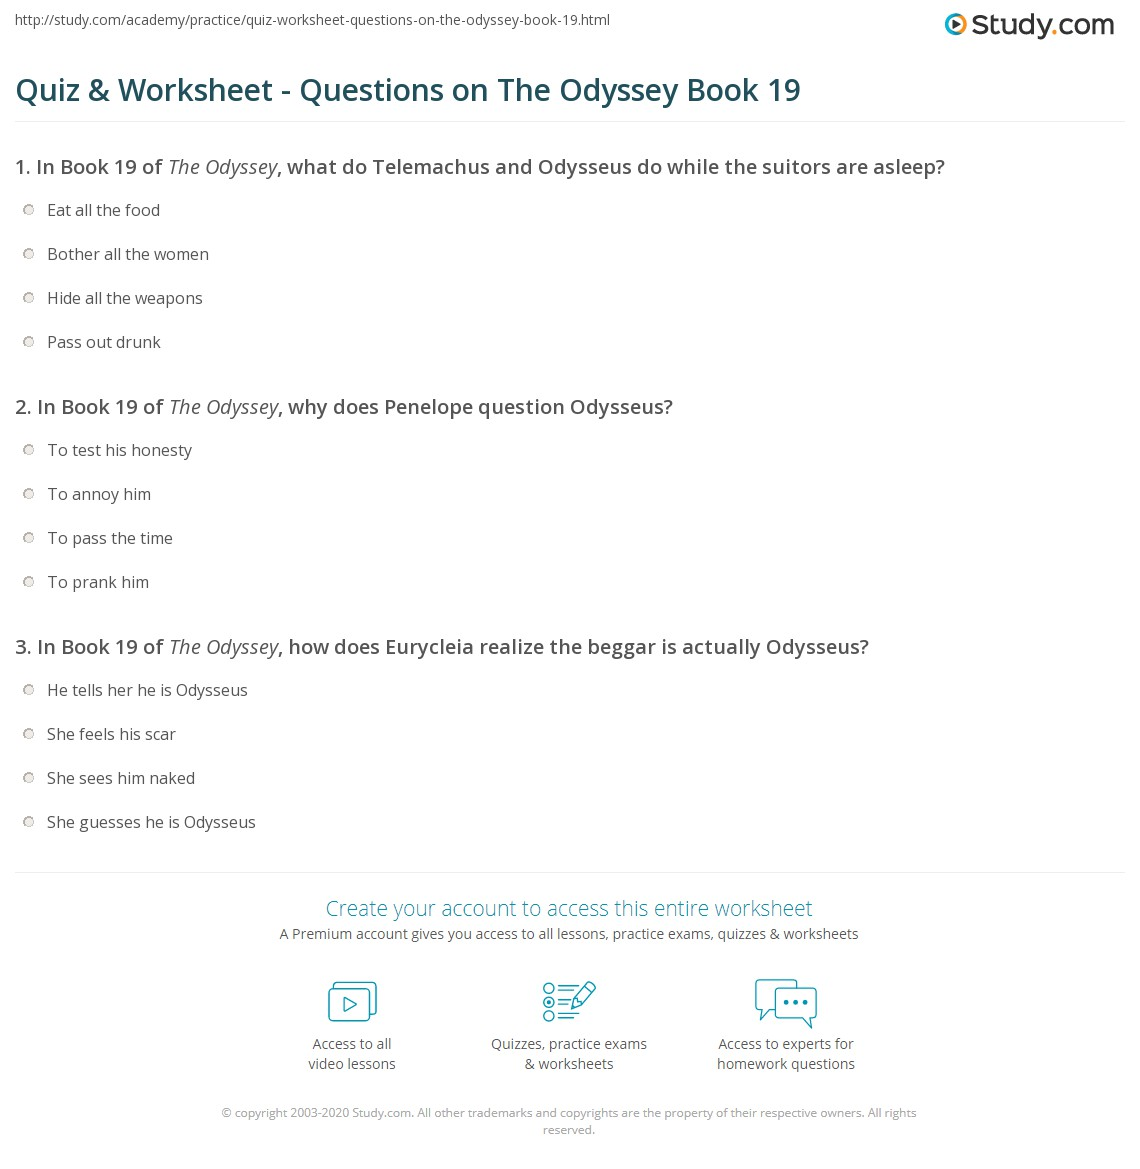 Print The Odyssey Book 19: Summary & Quotes Worksheet